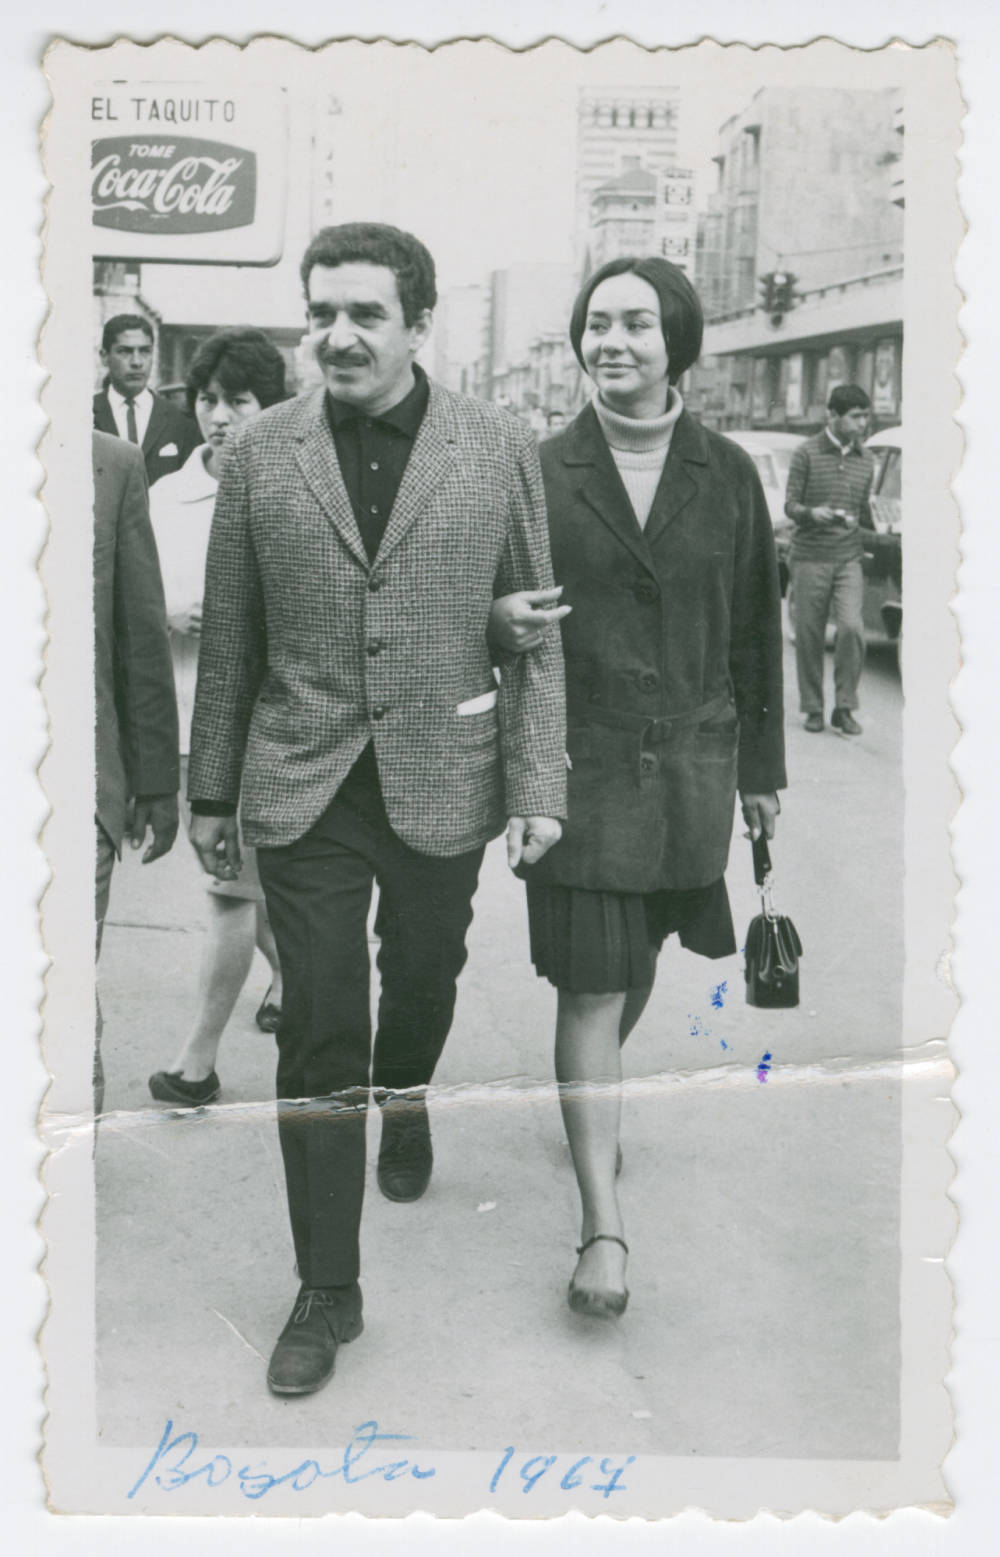 Man with Woman Walking in Hand